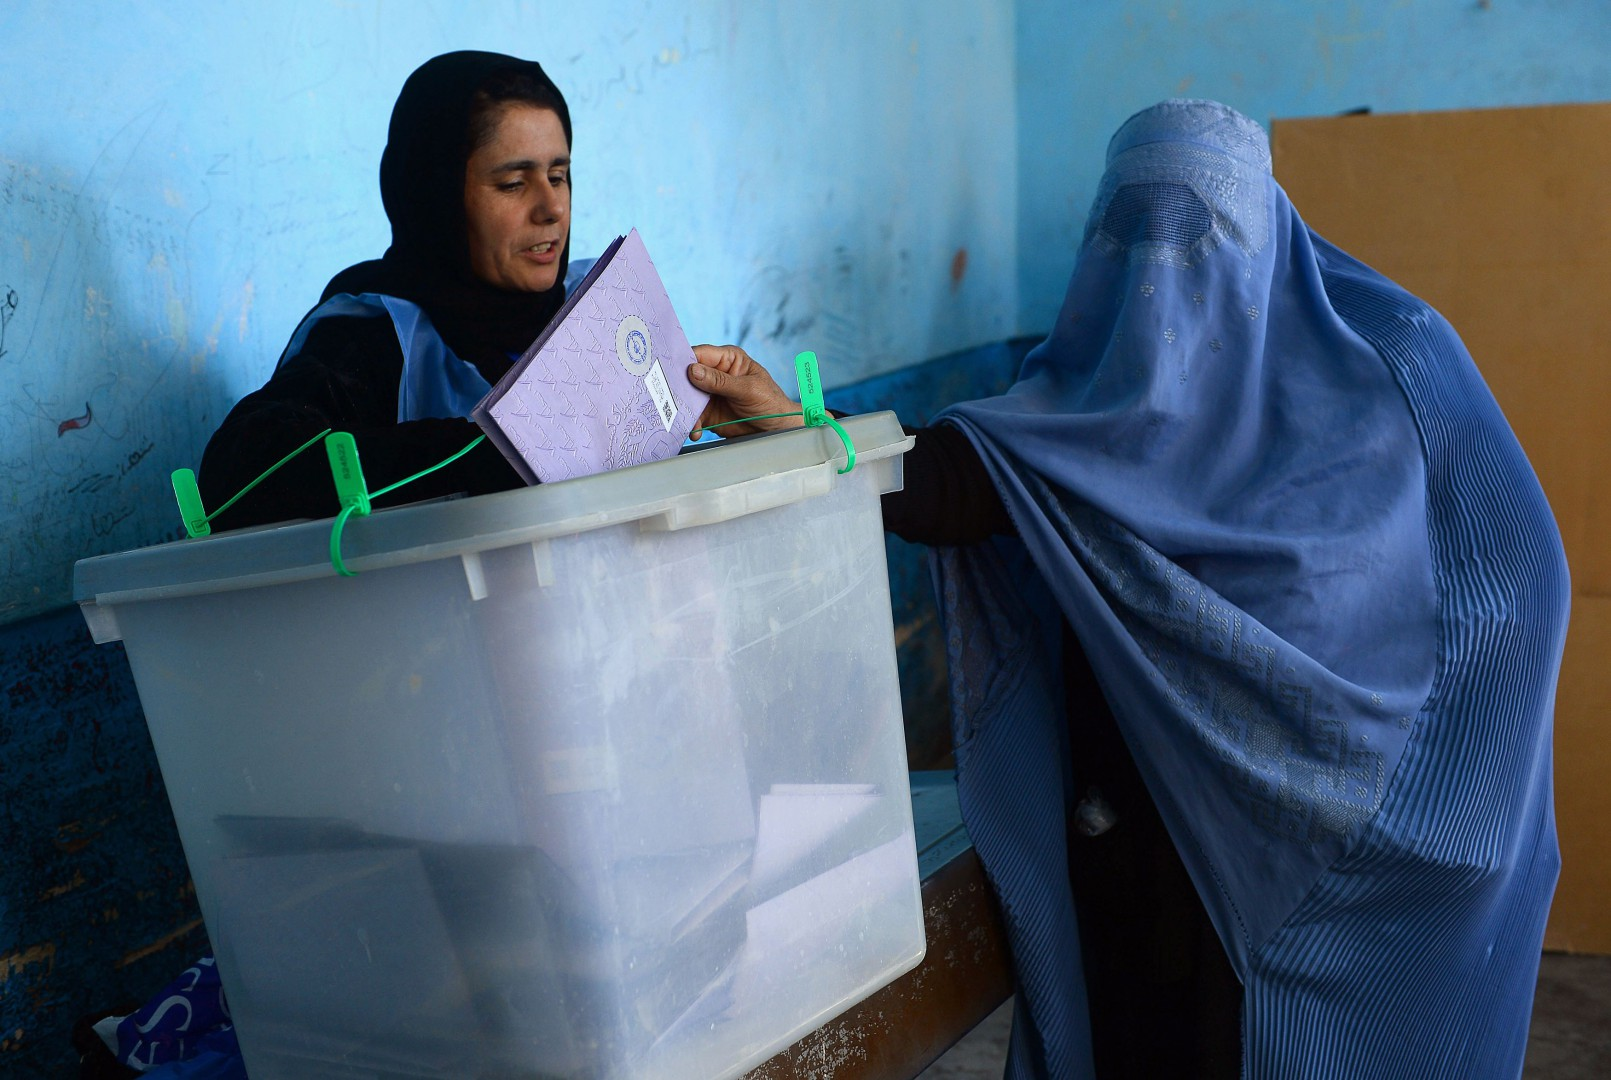 An Afghan voter casts her ballot at a polling centre for the country's legislative election in Herat on October 20, 2018. - Multiple explosions rocked polling centres across Kabul on October 20, causing dozens of casualties, amid growing anger among voters as they waited hours to cast their ballots in long-delayed legislative elections. (Photo by HOSHANG HASHIMI / AFP)